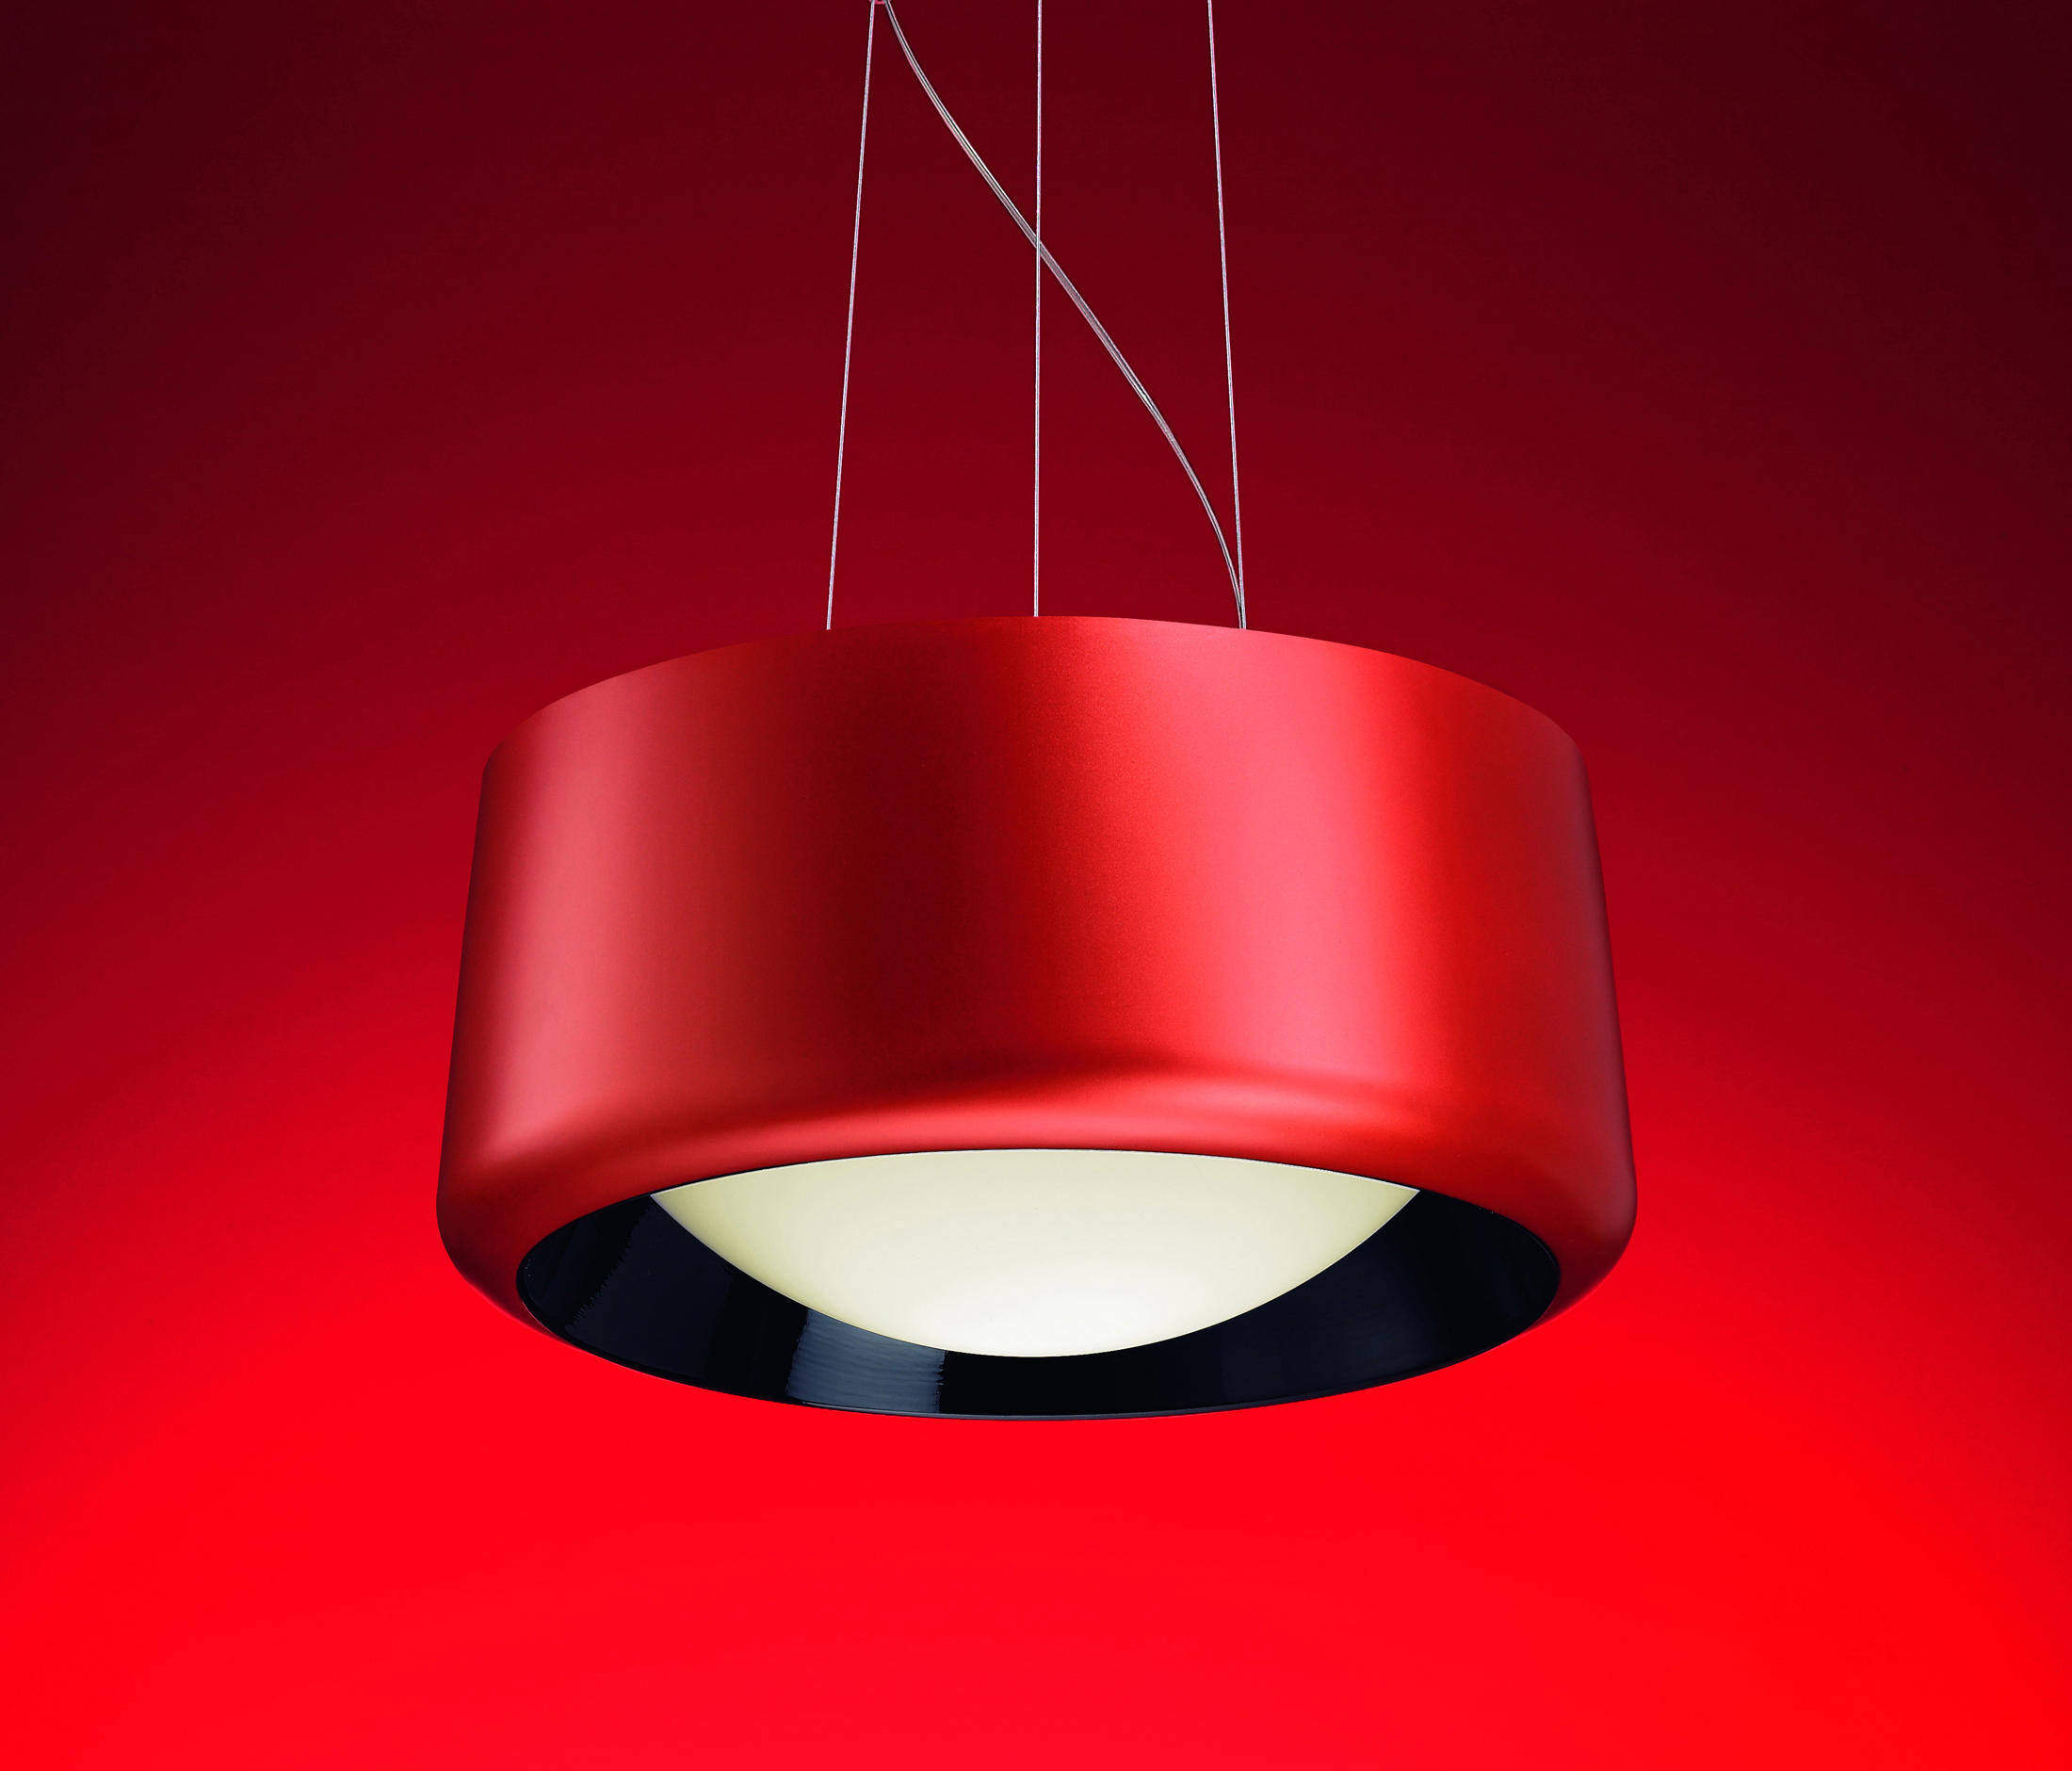 Ceiling Mounted Pendant Lights